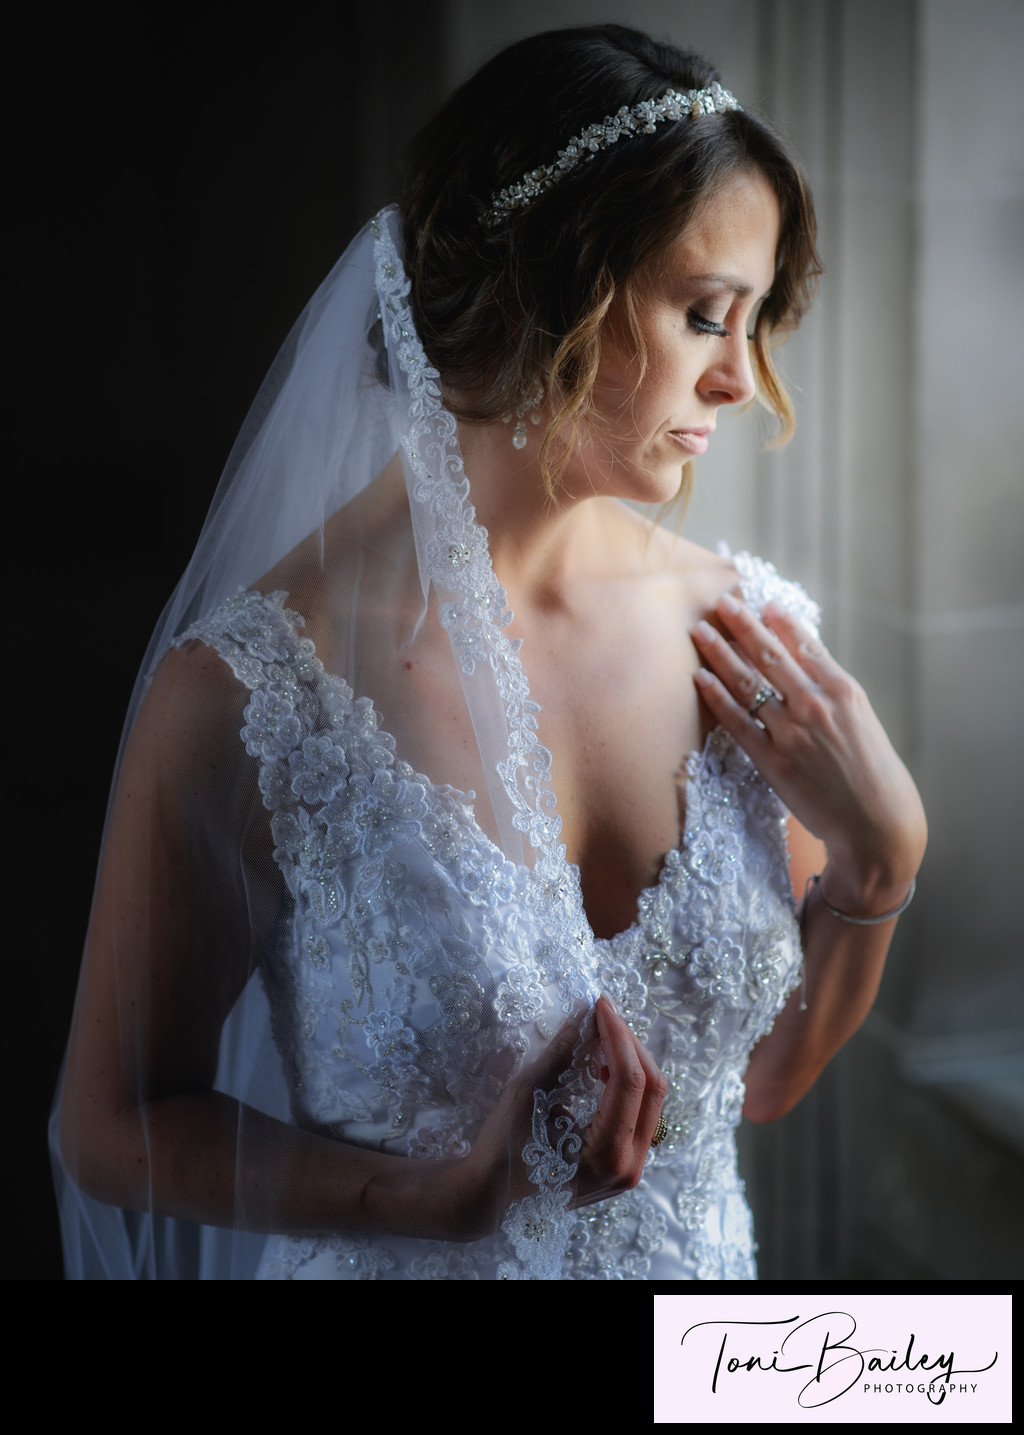 Beautiful bride showing her ring